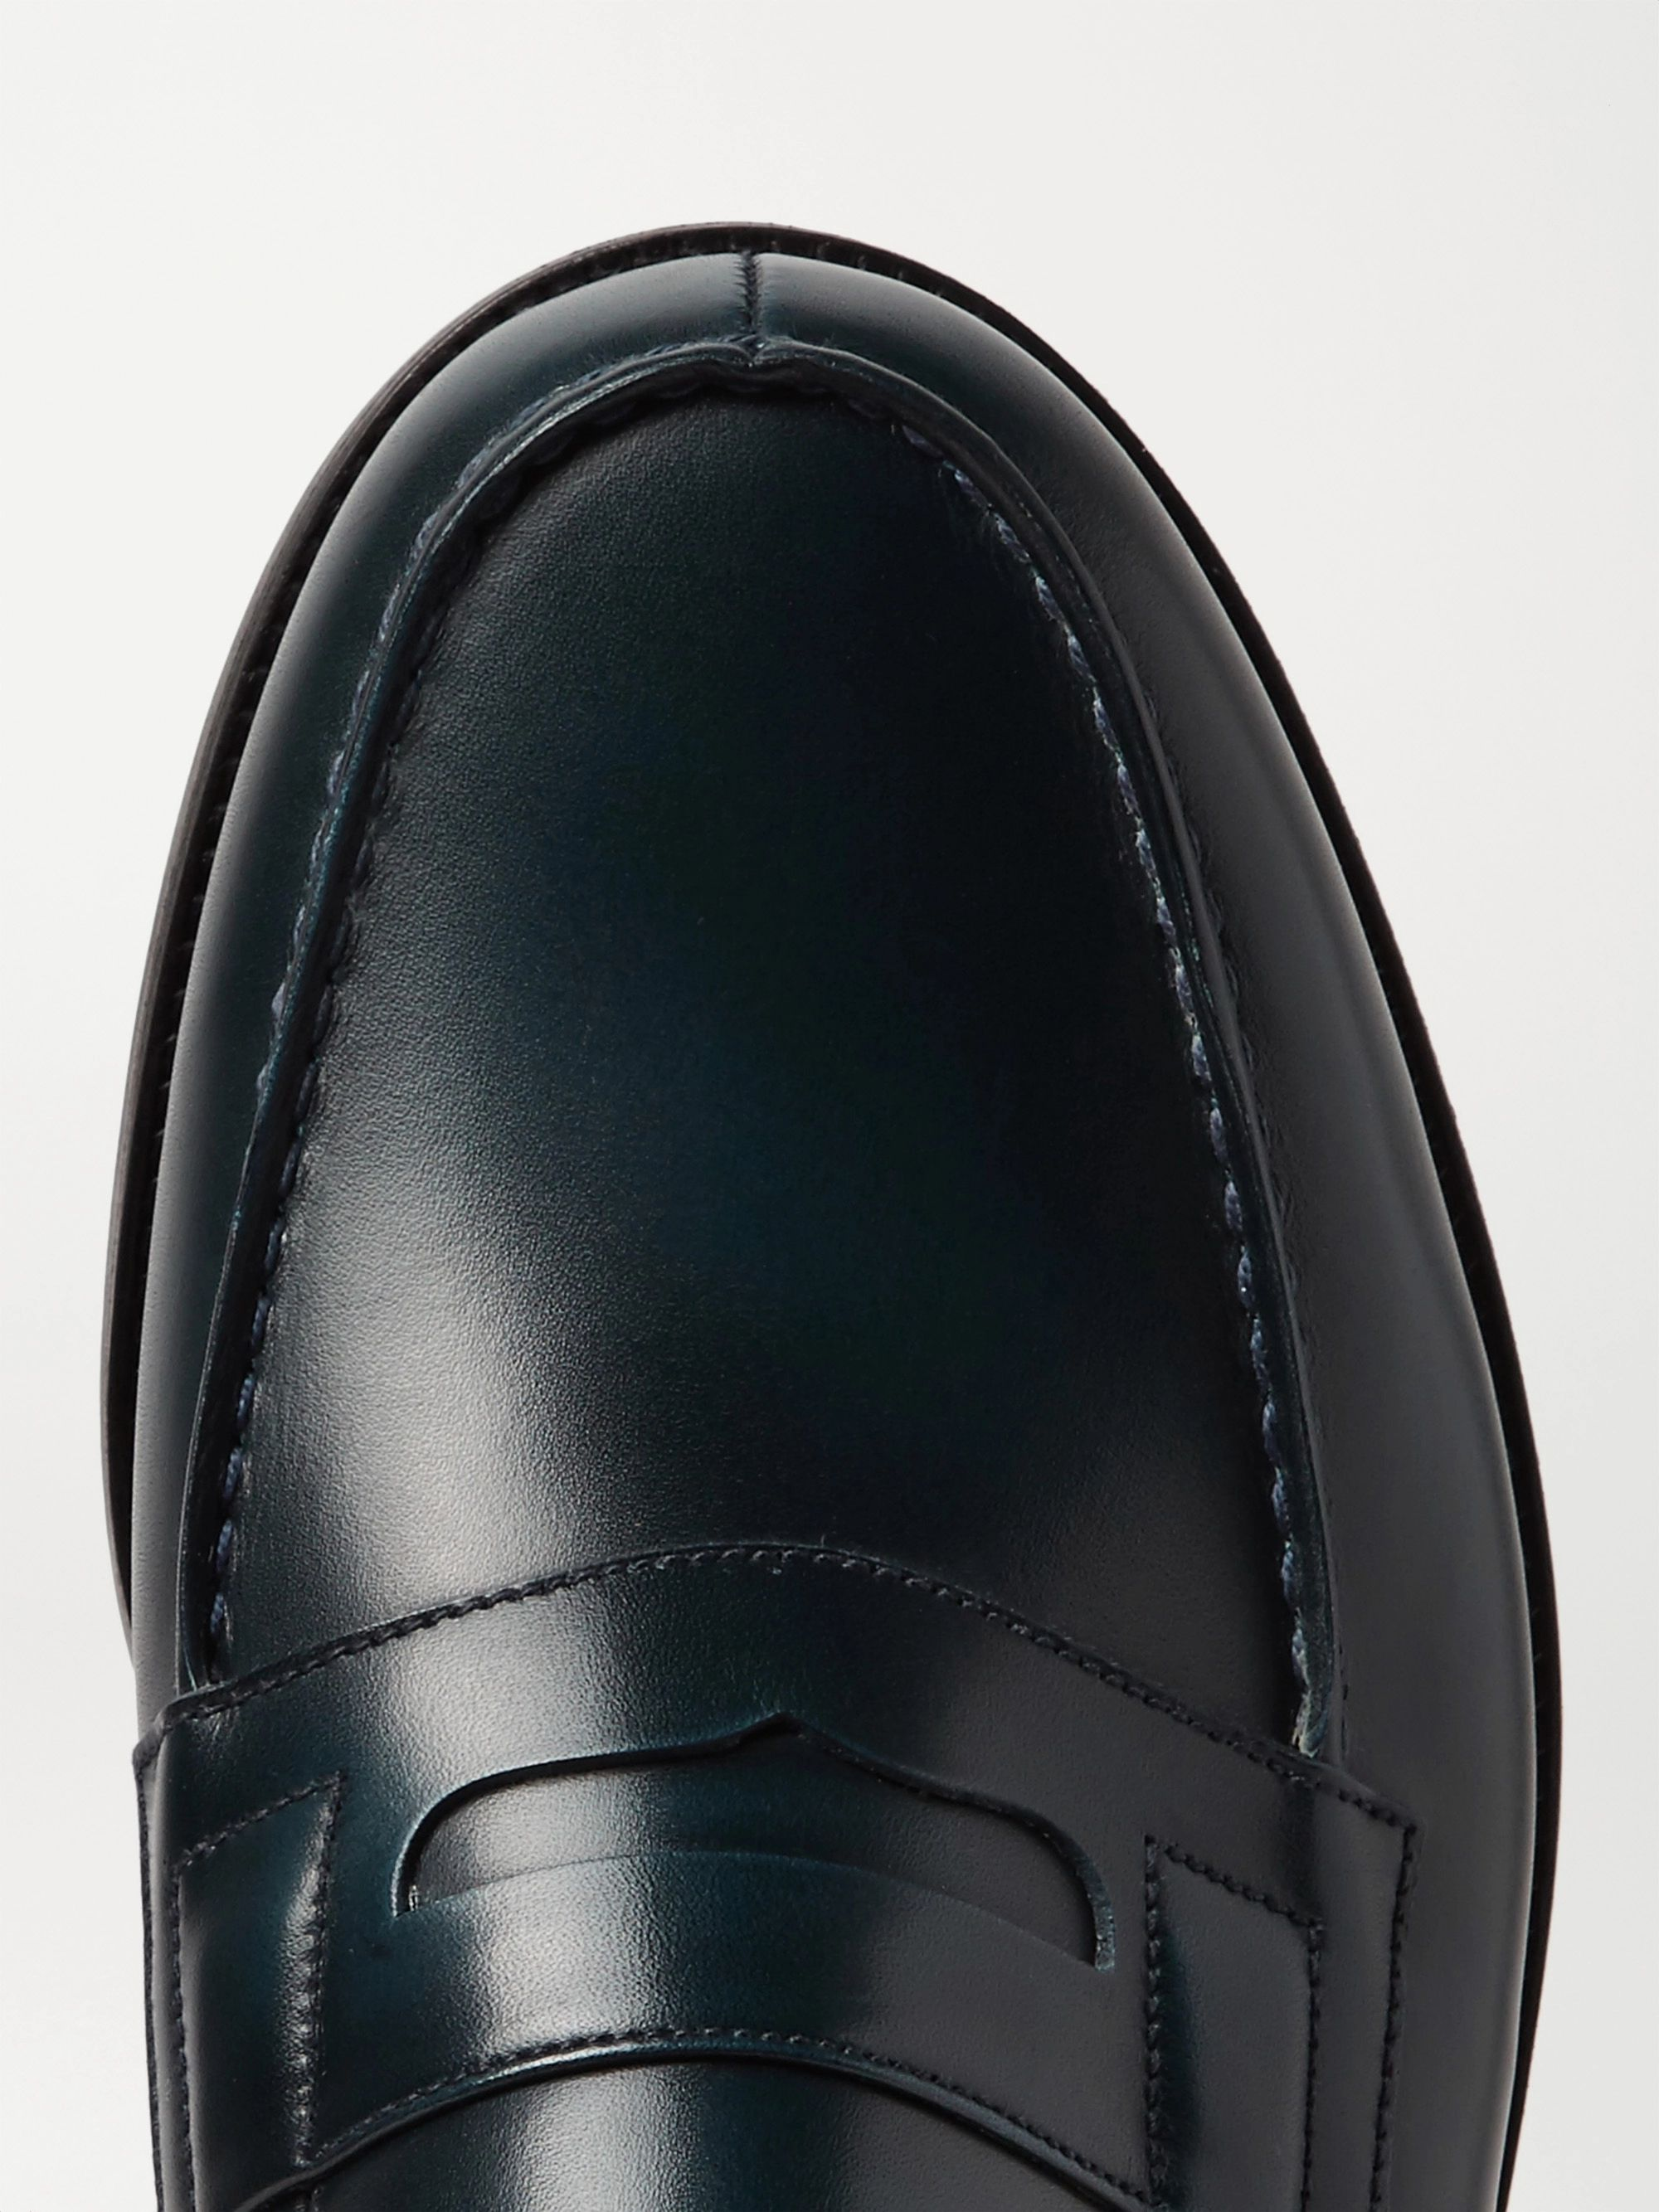 J.M. Weston Leather Penny Loafers